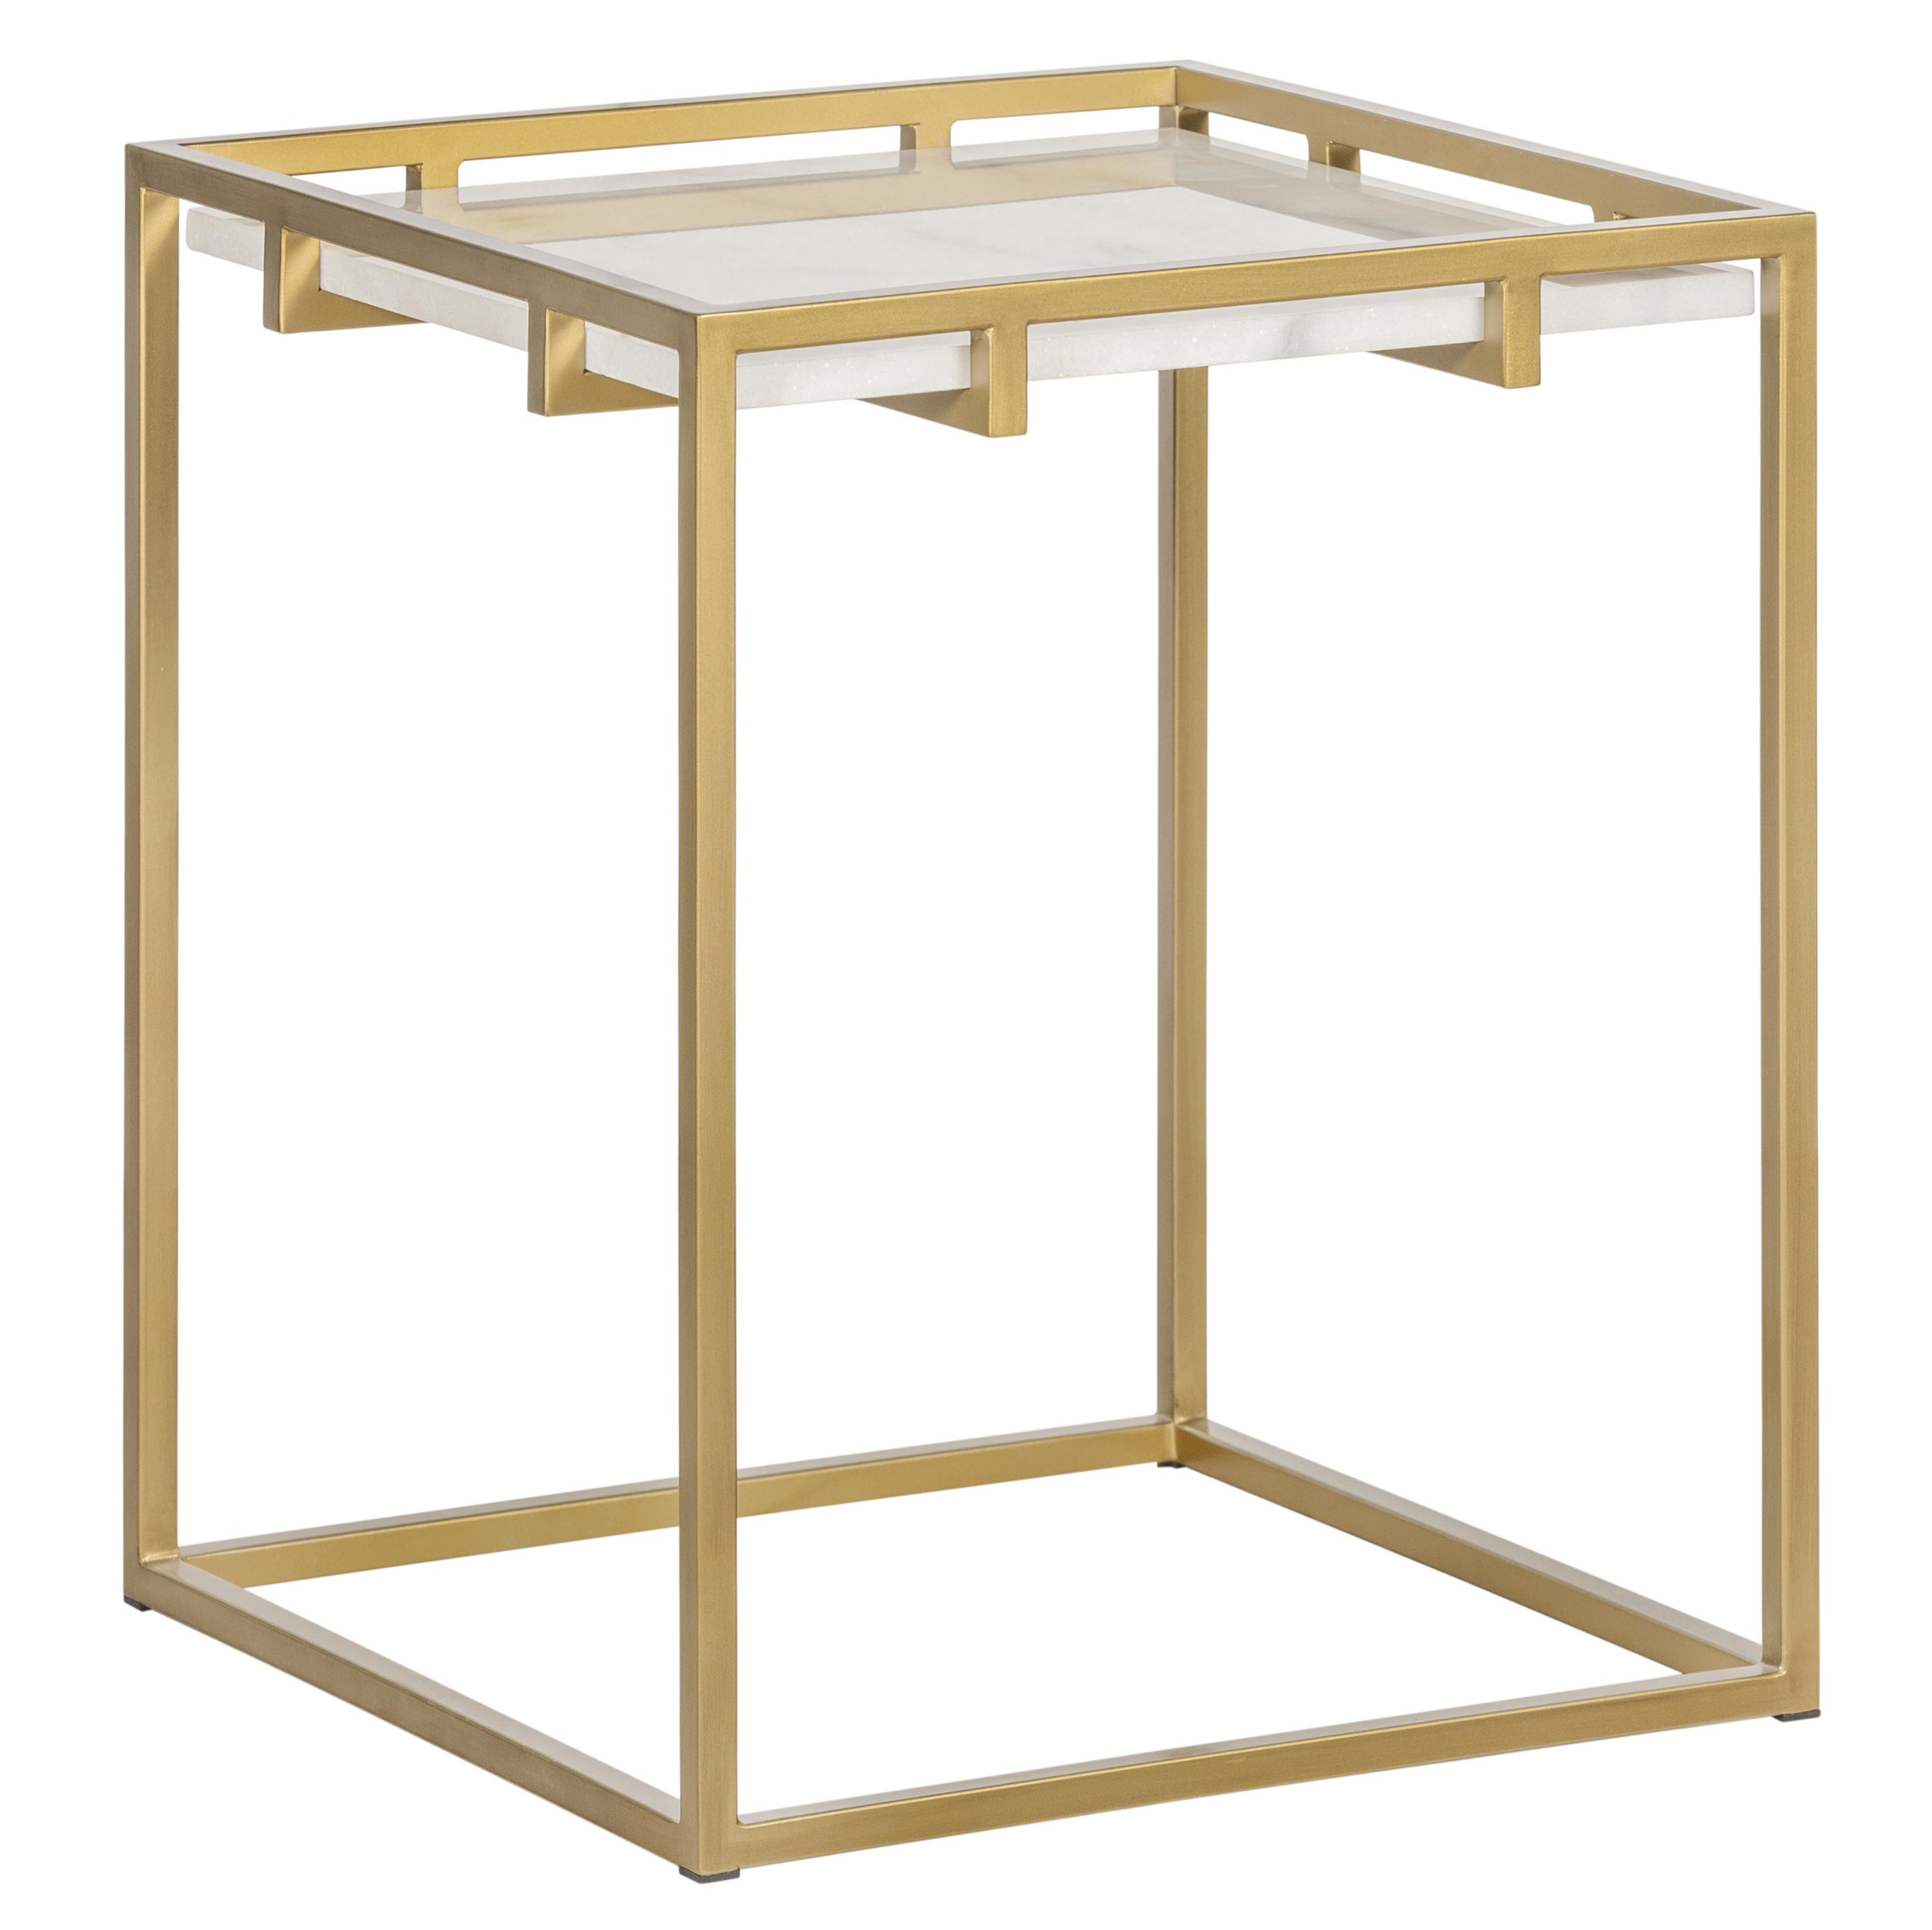 tommy hilfiger default name black gold accent table save furniture bags modern coffee tables edmonton wrought iron patio side counter height console red asian lamp steel trestle